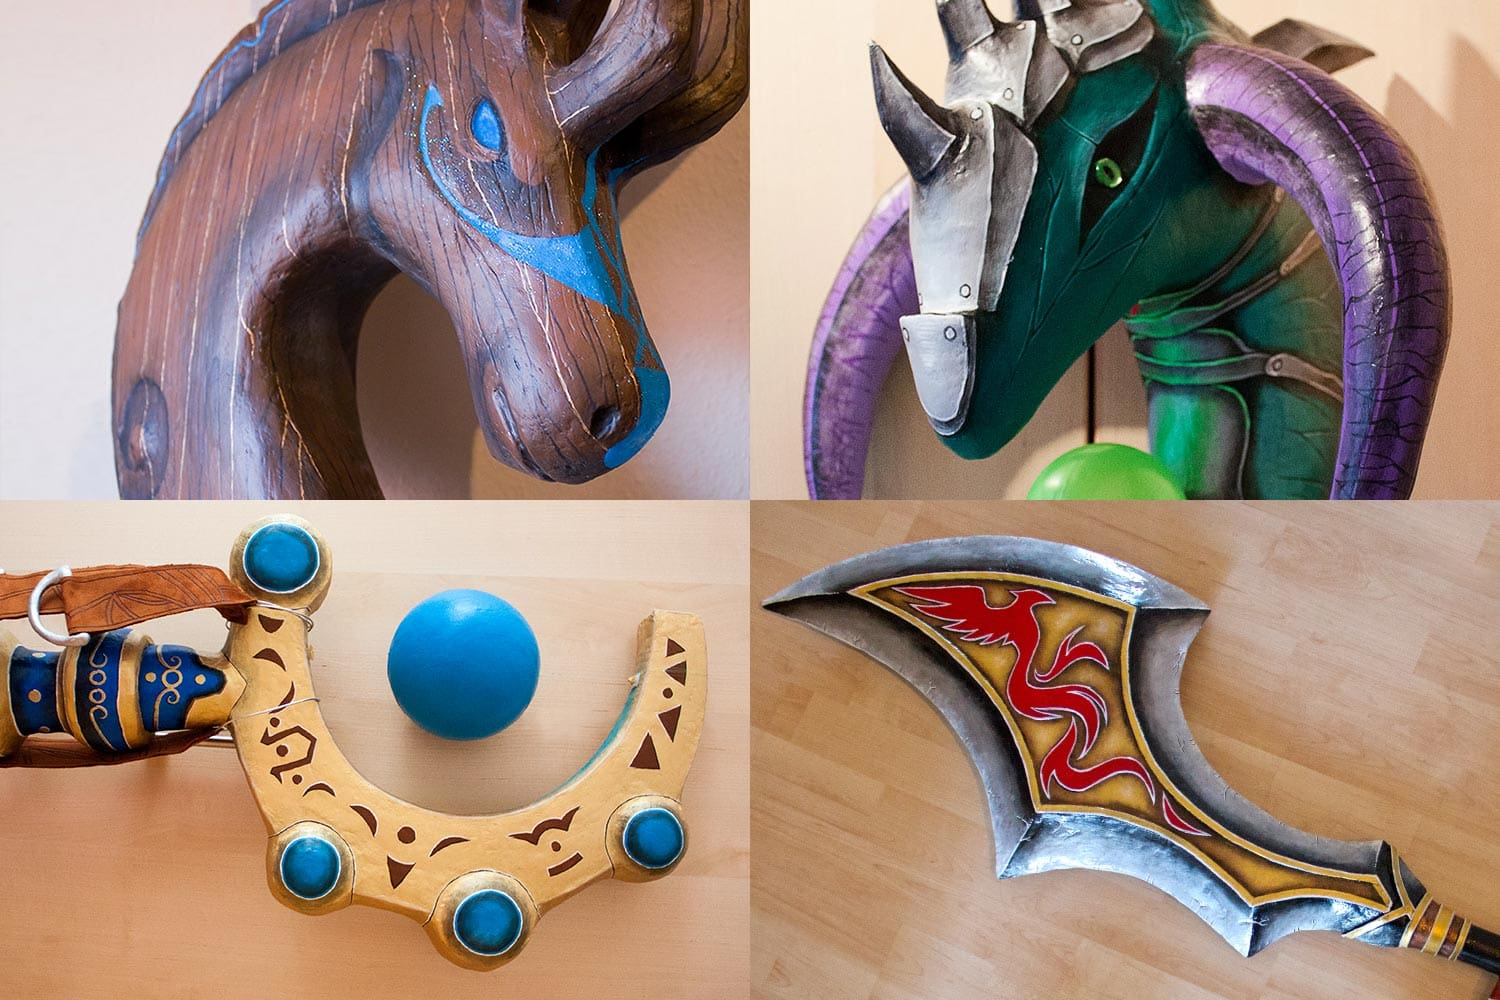 Kamui-Cosplay-Props-Druid-Staffs-World-of-Warcraft